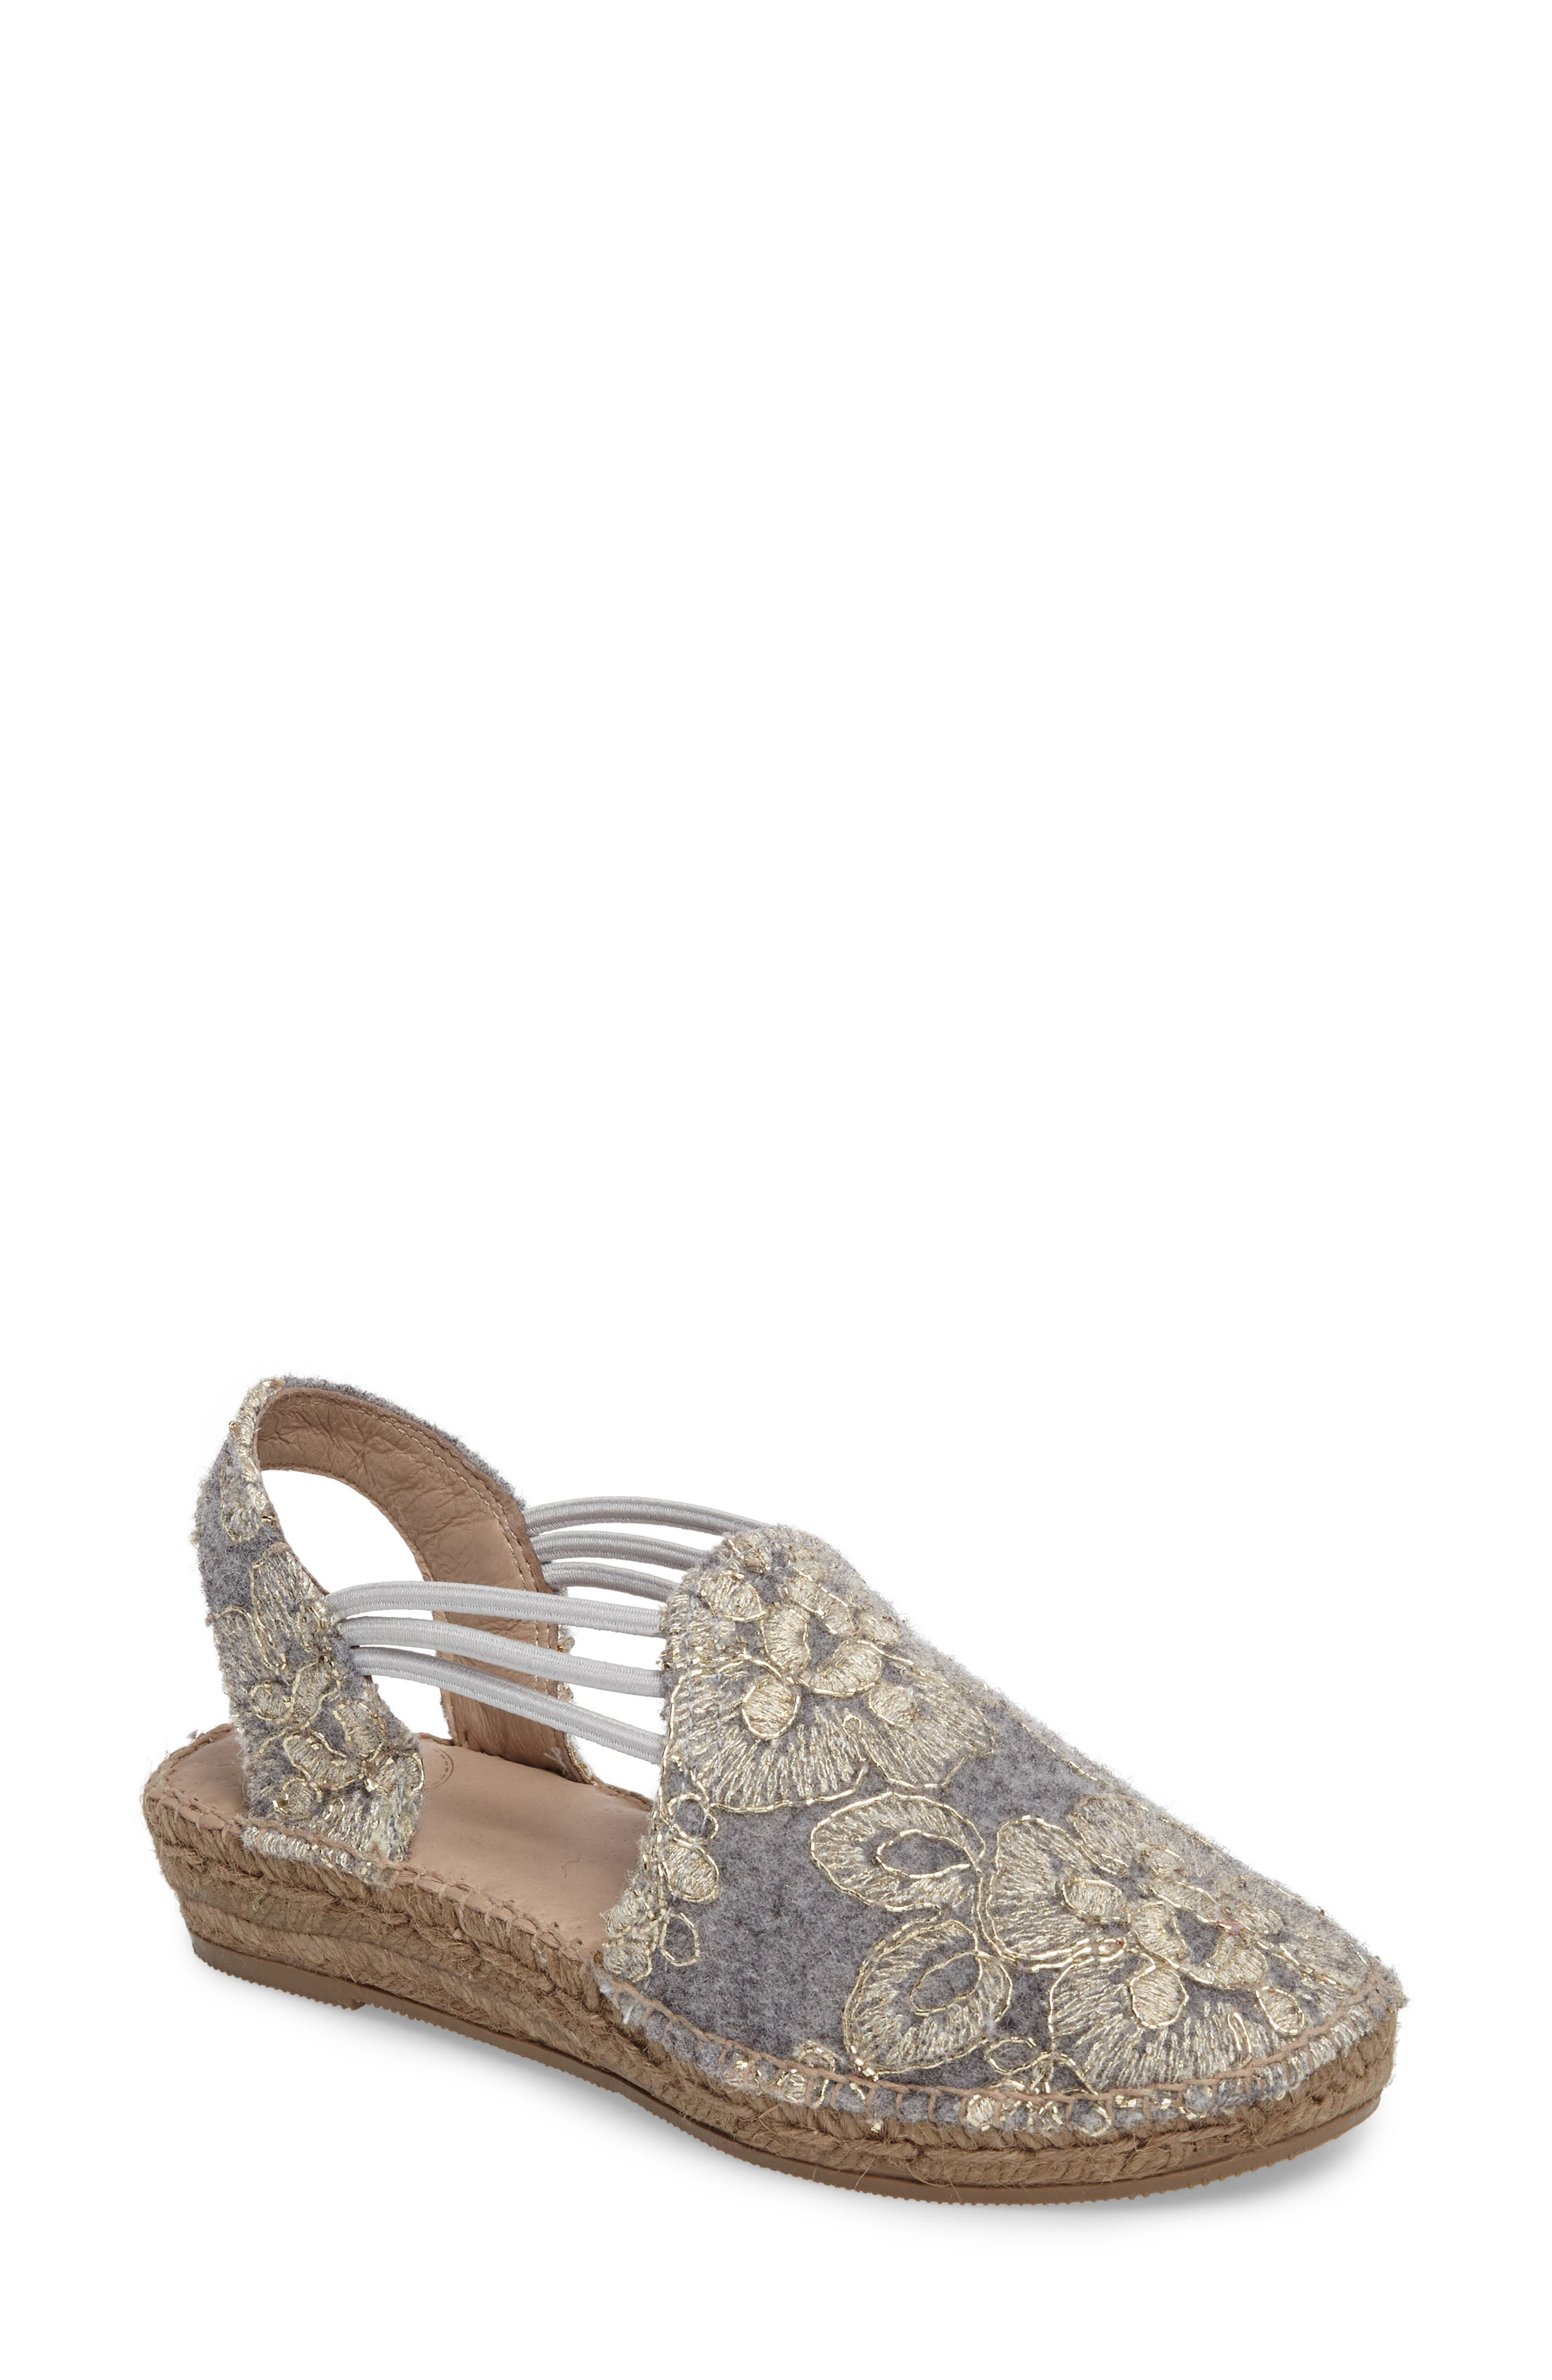 Metz Embroidered Espadrille Wedge,                         Main,                         color, 020